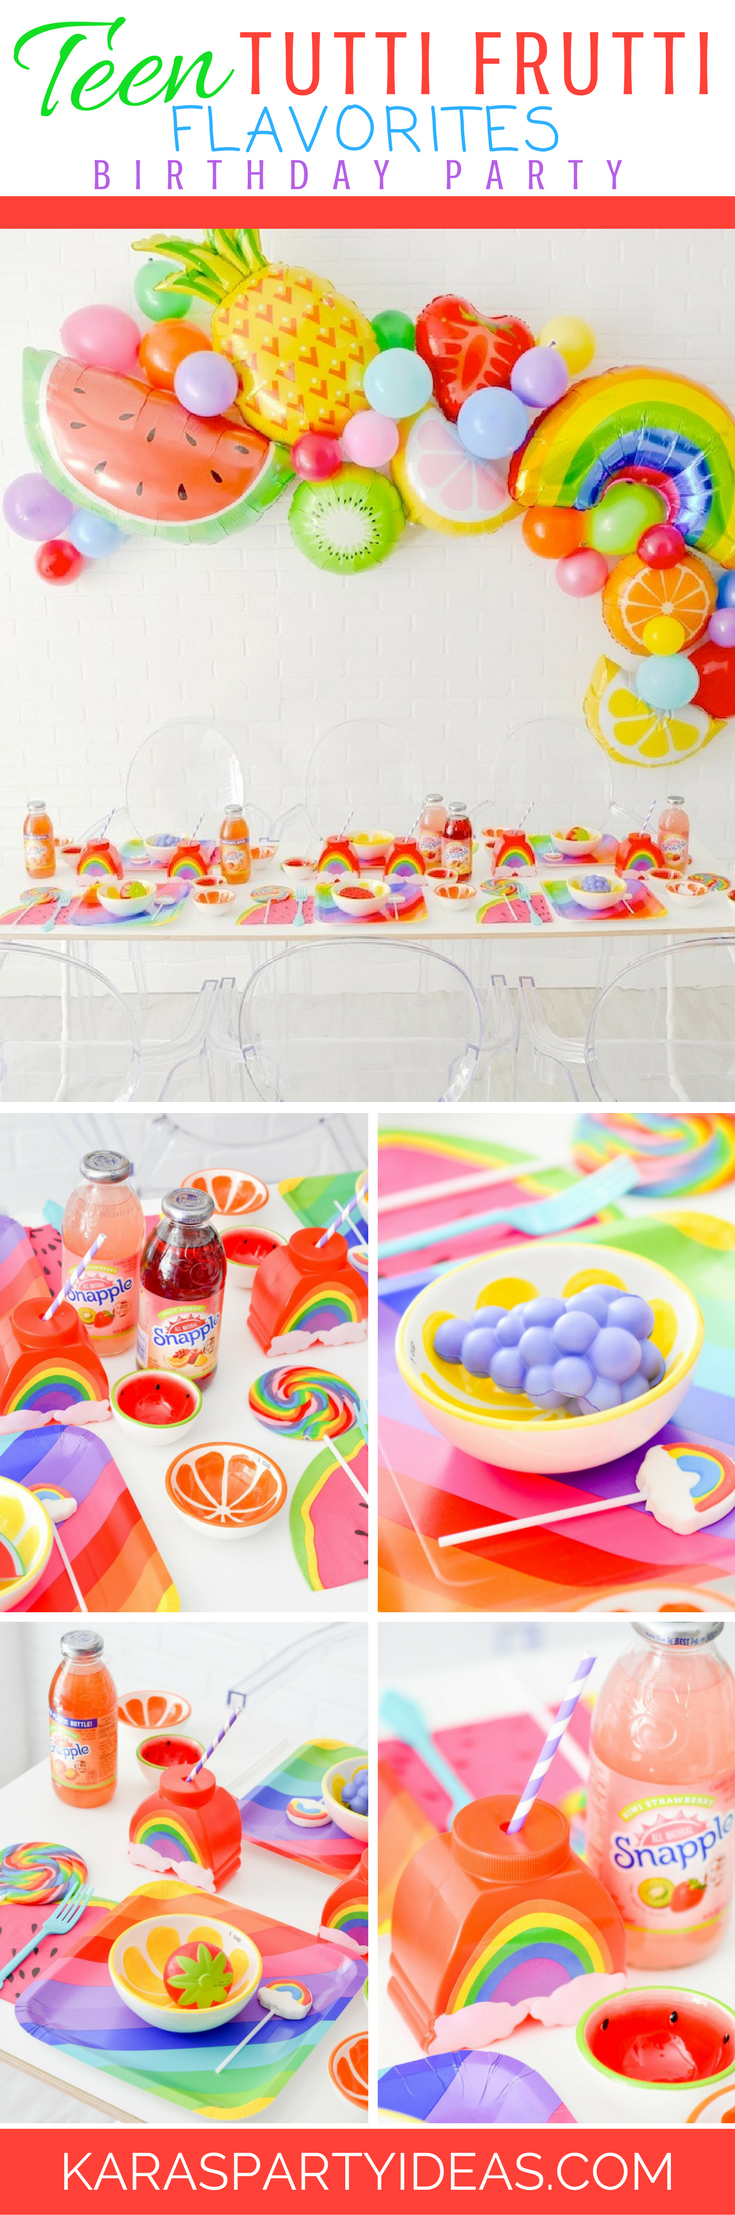 Teen Tutti Frutti Flavorites Rainbow Birthday Party via Kara's Party Ideas - KarasPartyIdeas.com